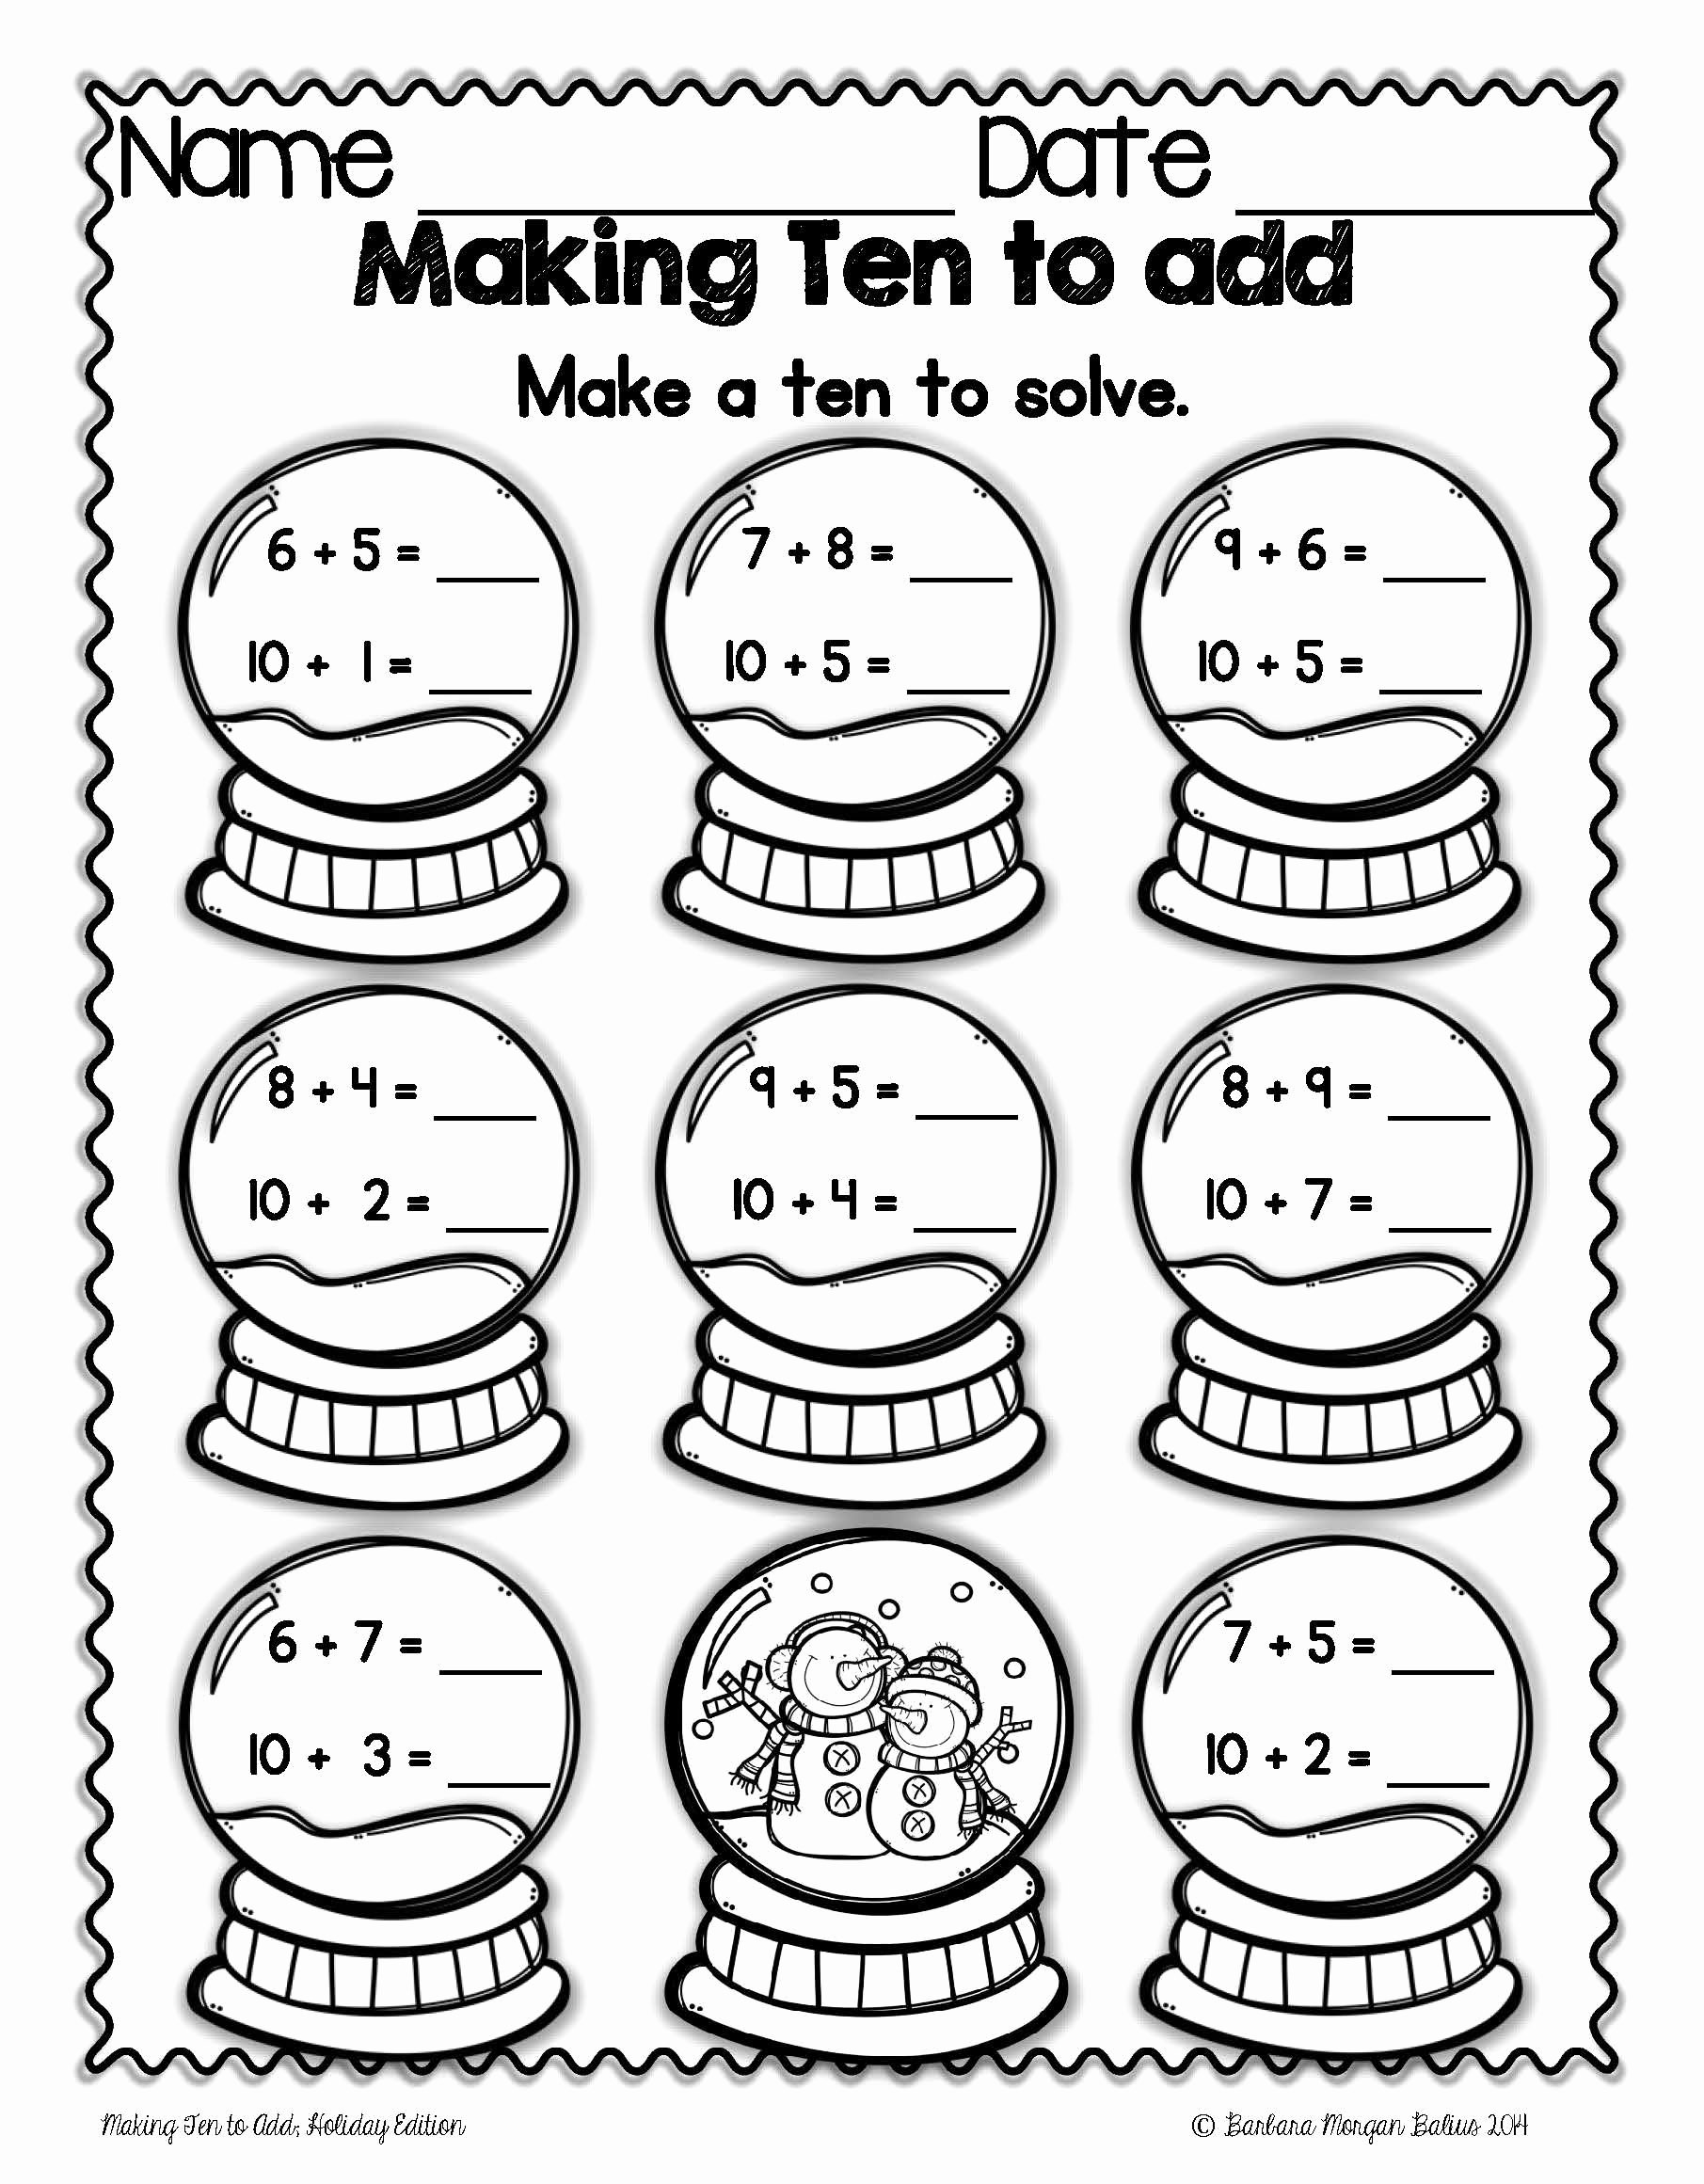 Christmas Multiplication Worksheets New Worksheets Puzzle Game Worksheets Secret Code Fun for